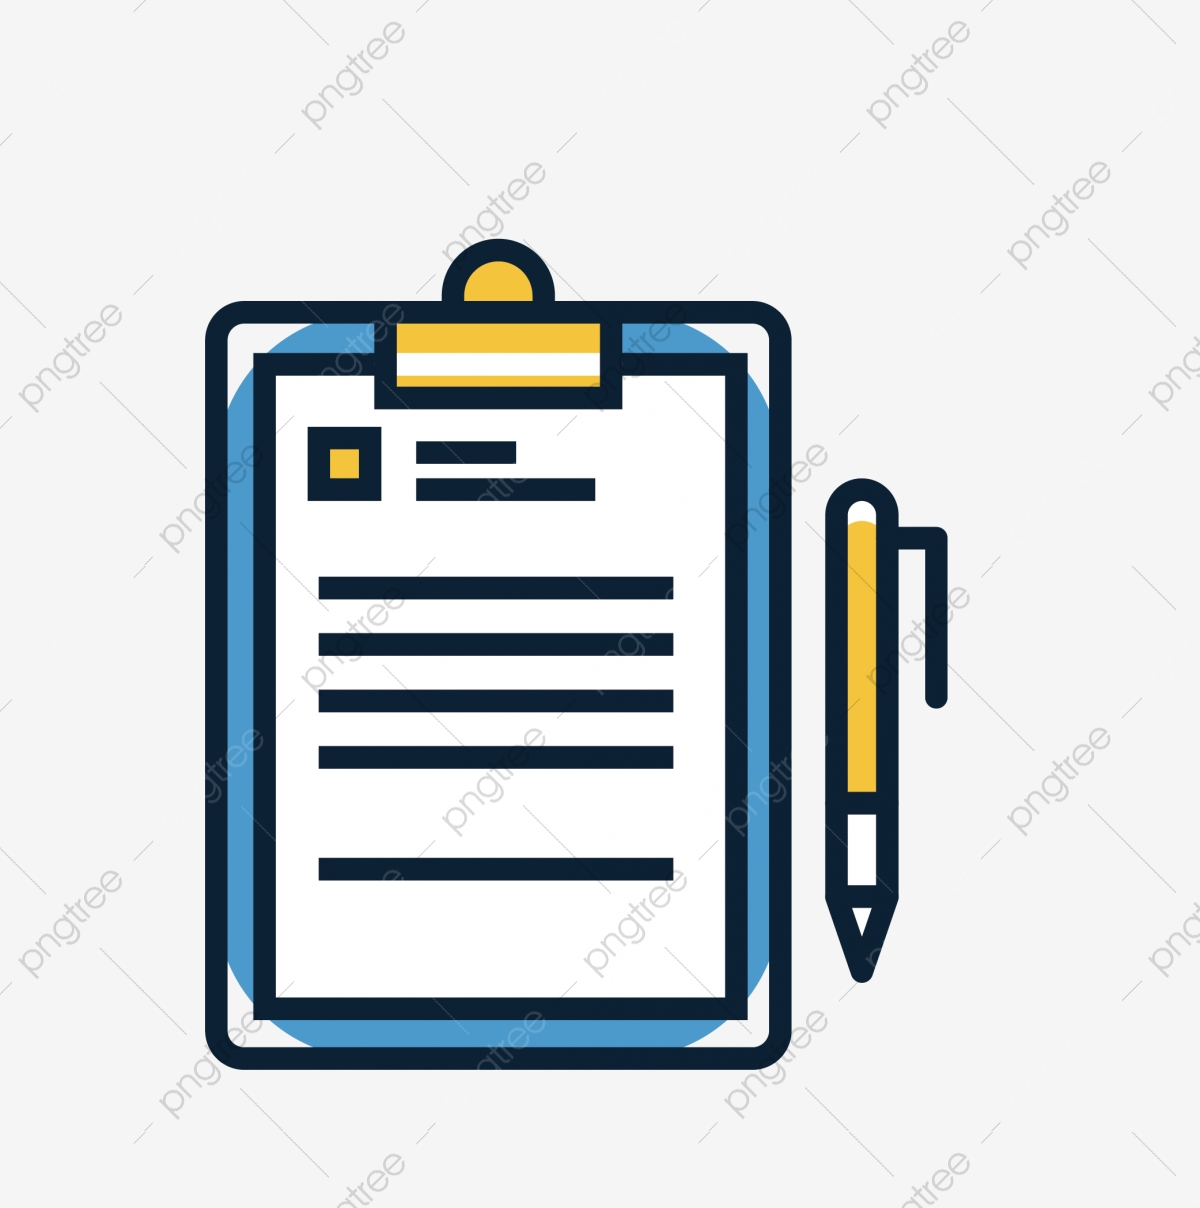 product case analysis icon illustration product case png and vector with transparent background for free download https pngtree com freepng product case analysis icon 3962478 html